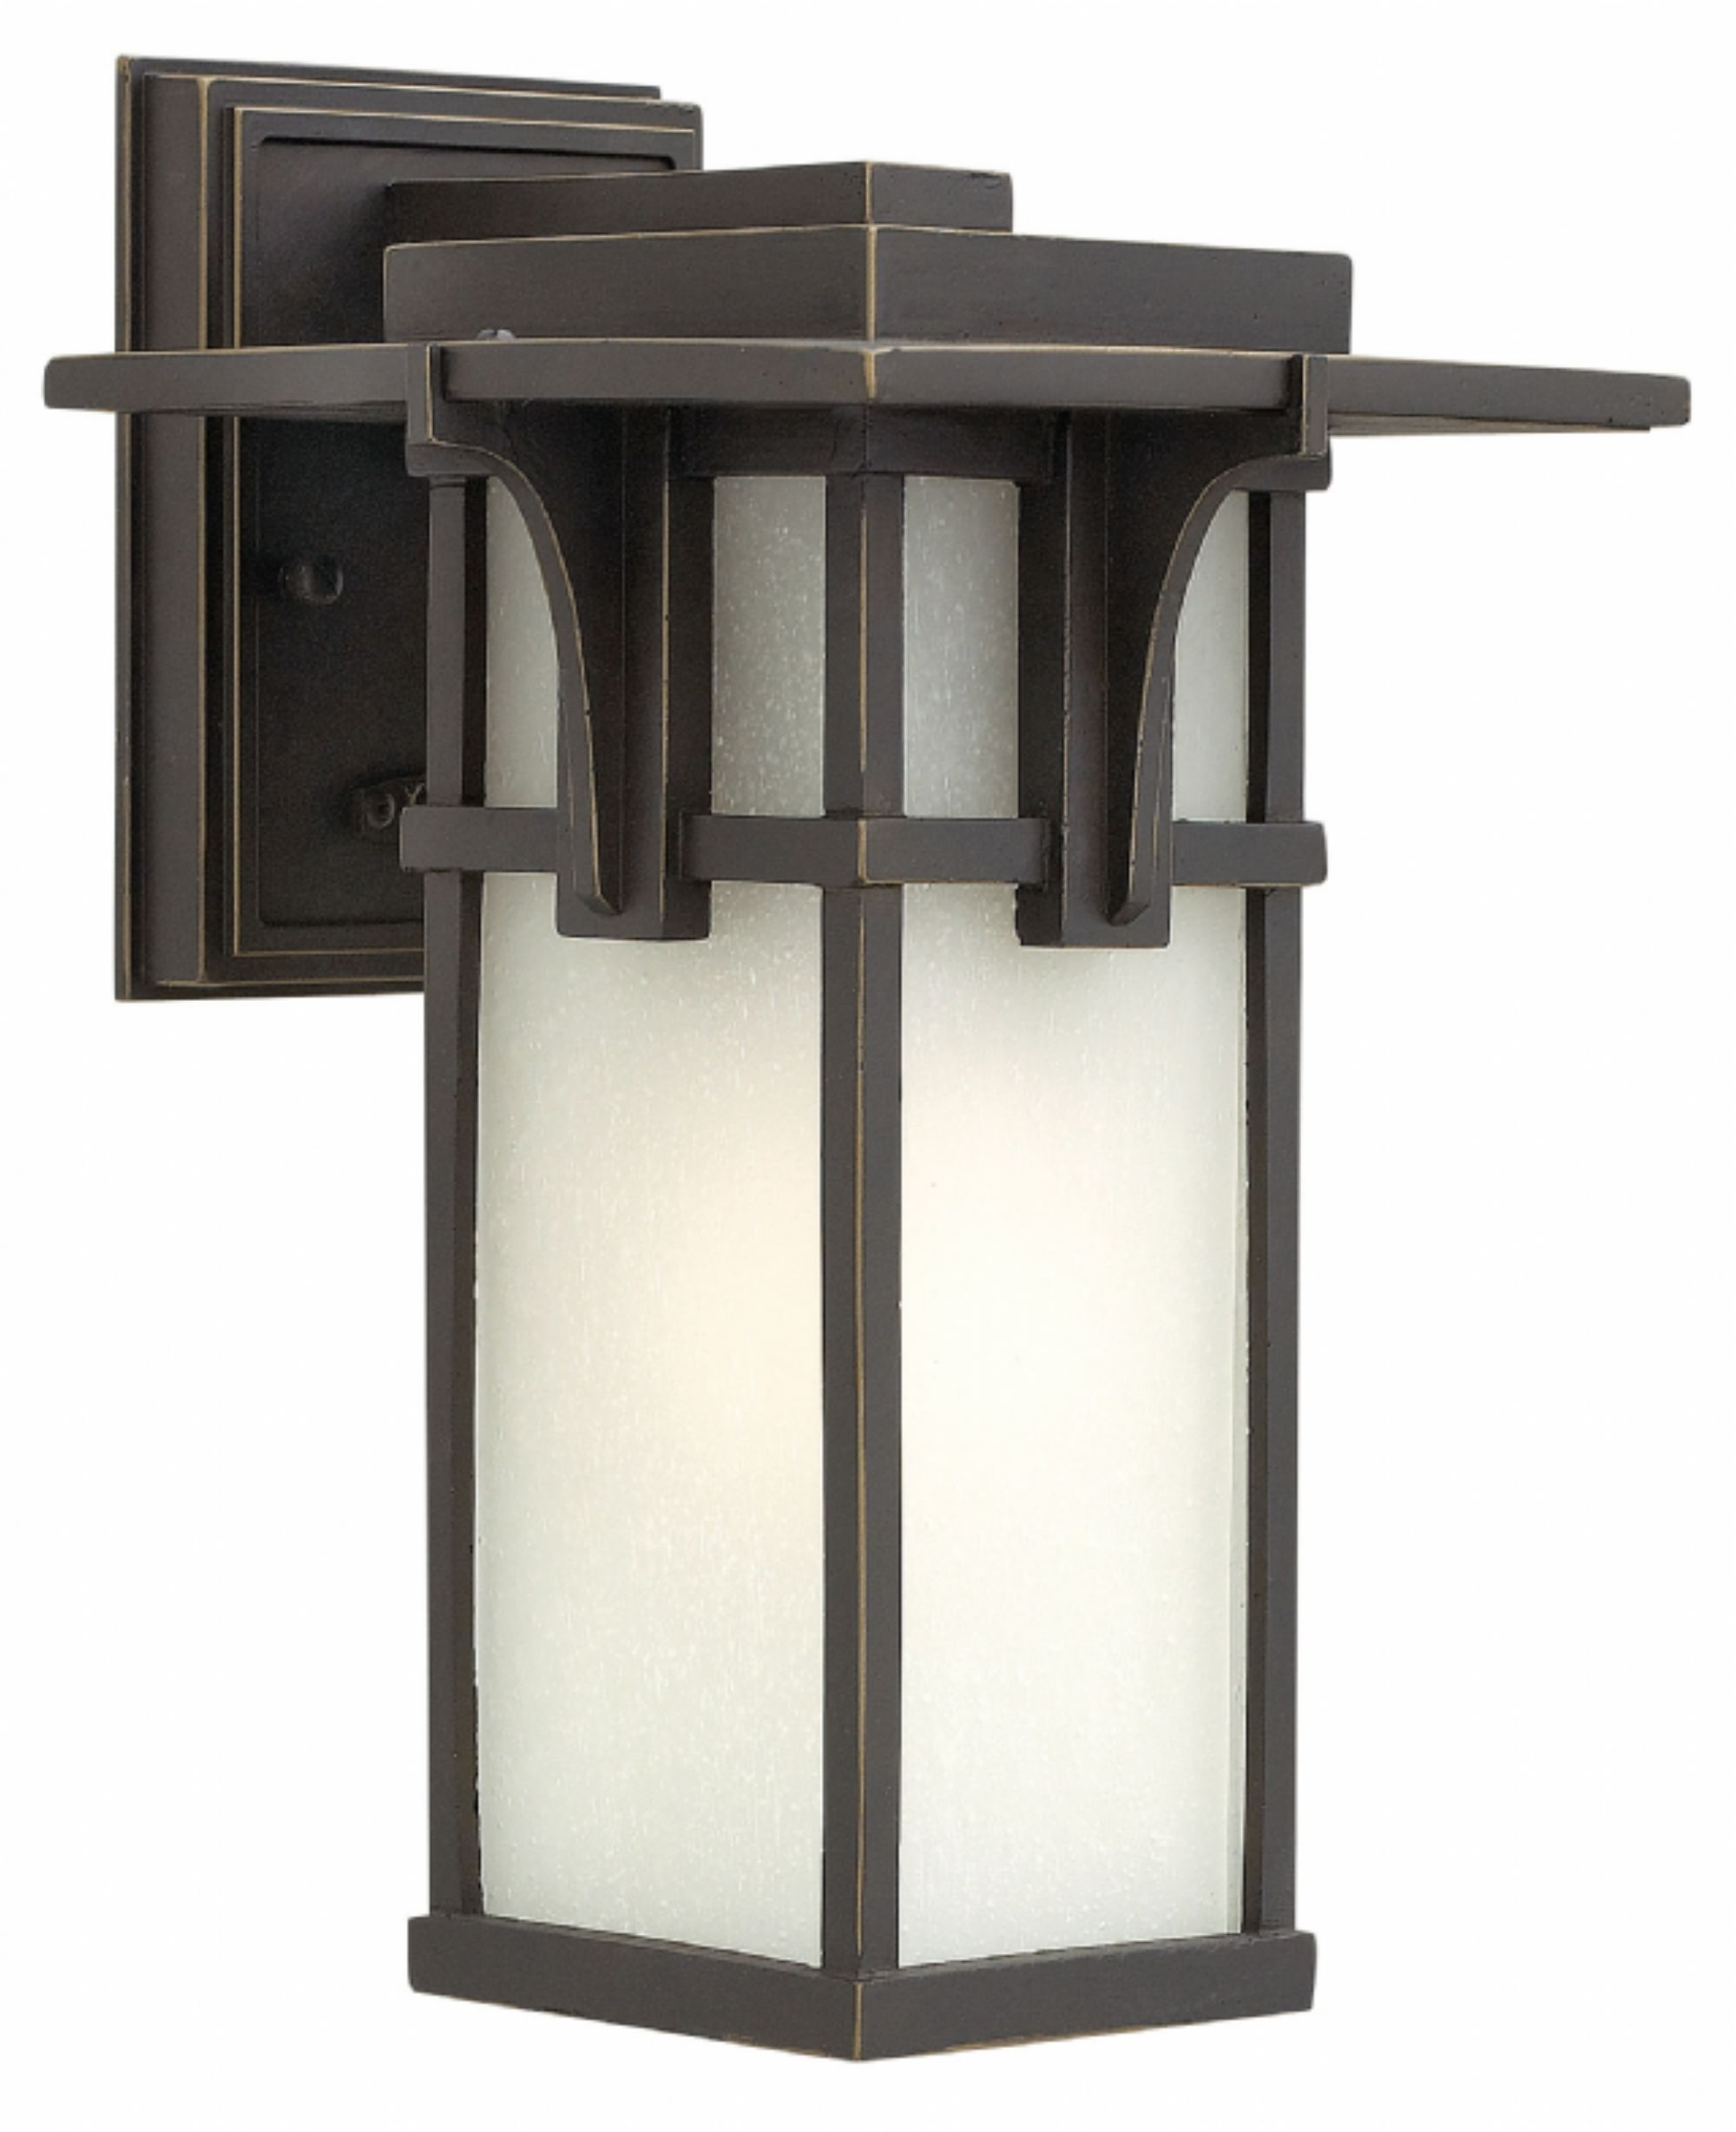 Hinkley Outdoor Wall Lighting With Regard To Well Known Oil Rubbed Bronze Manhattan > Exterior Wall Mount (View 3 of 20)